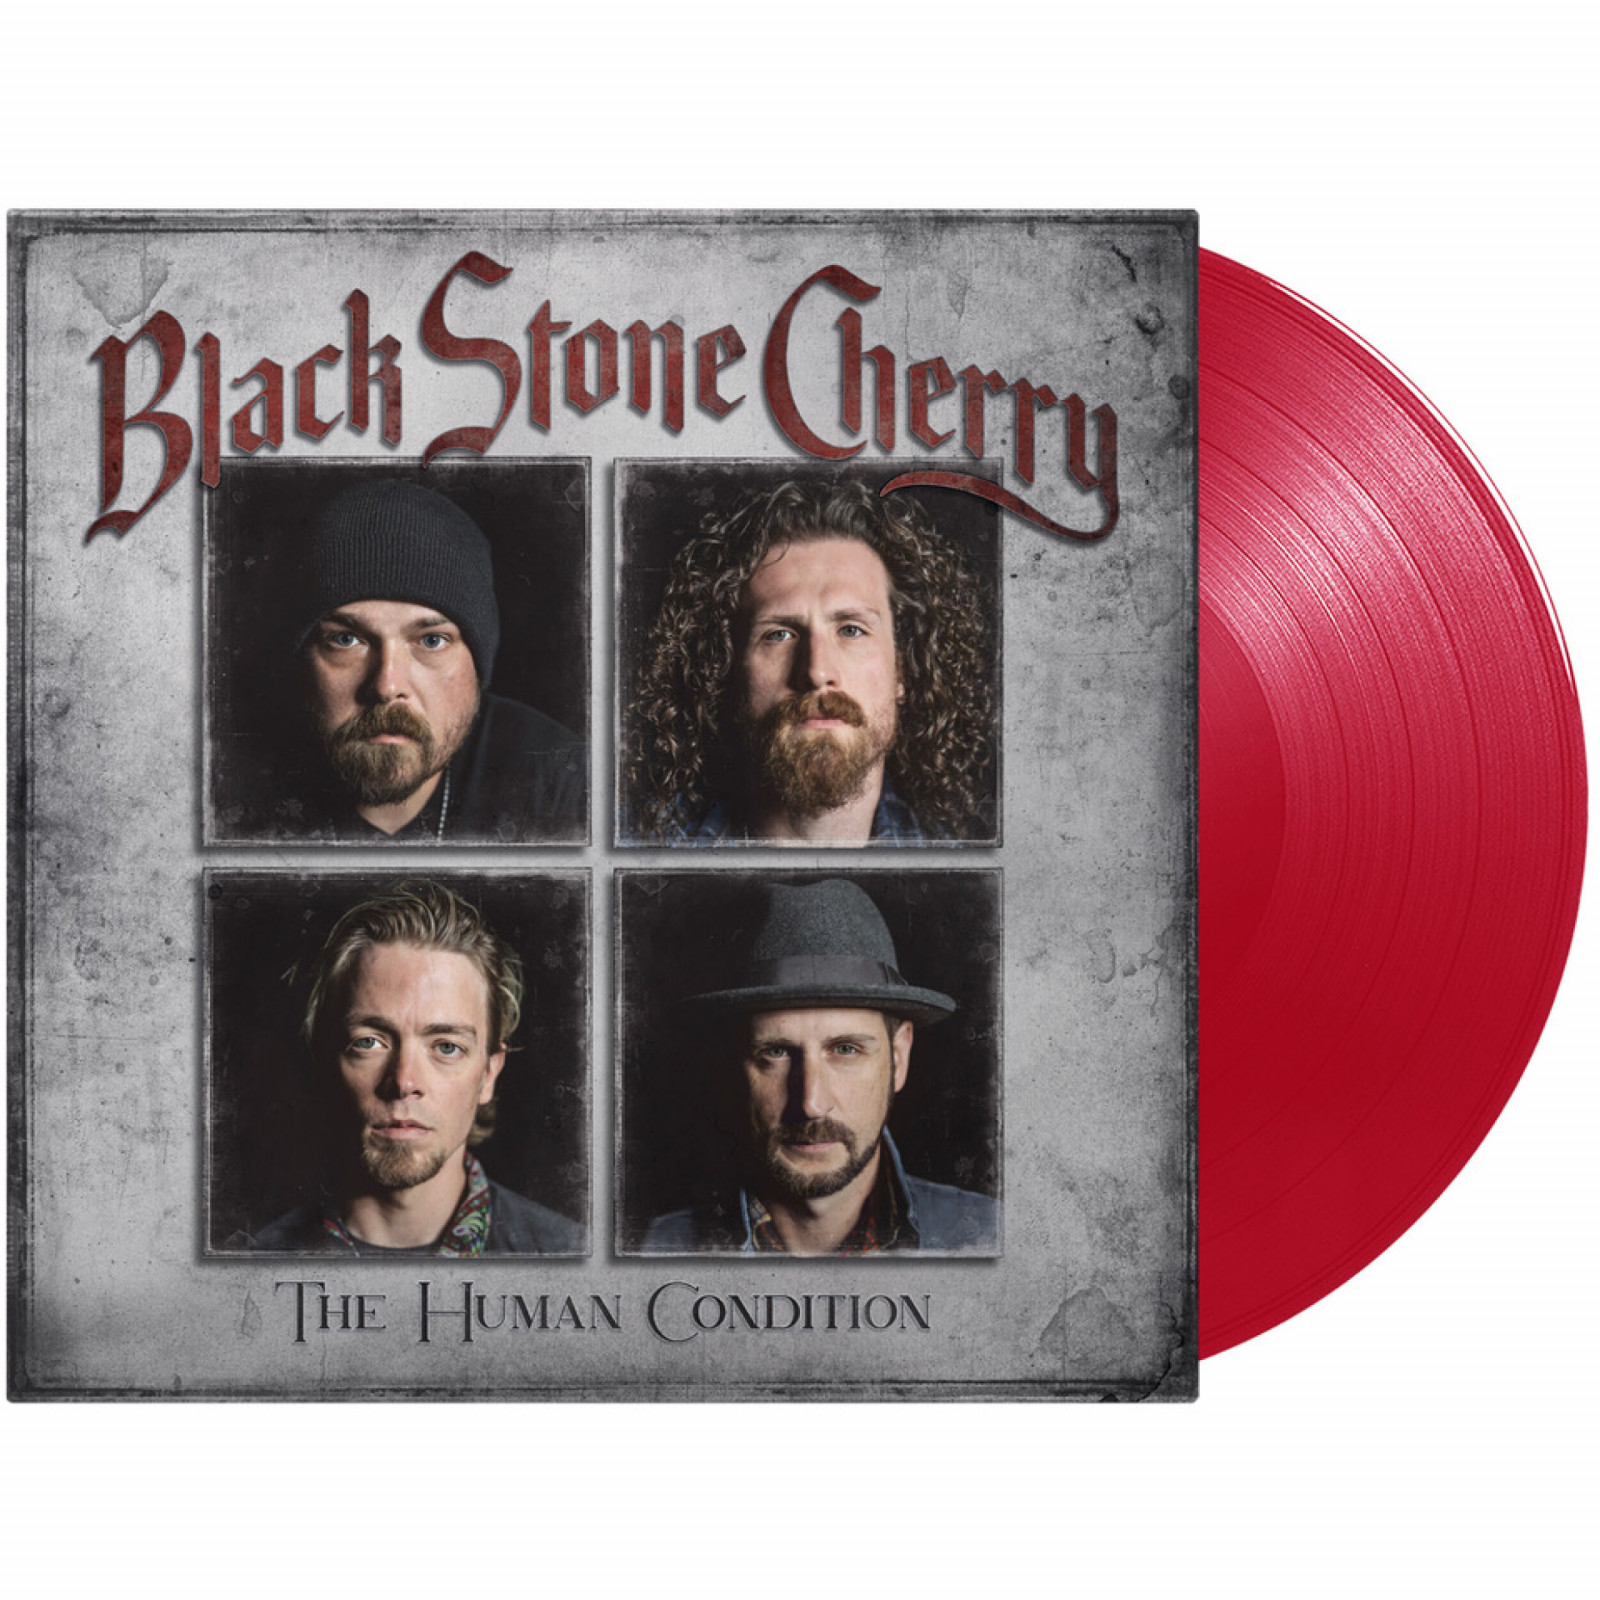 The Human Condition (Red Transparent Vinyl)